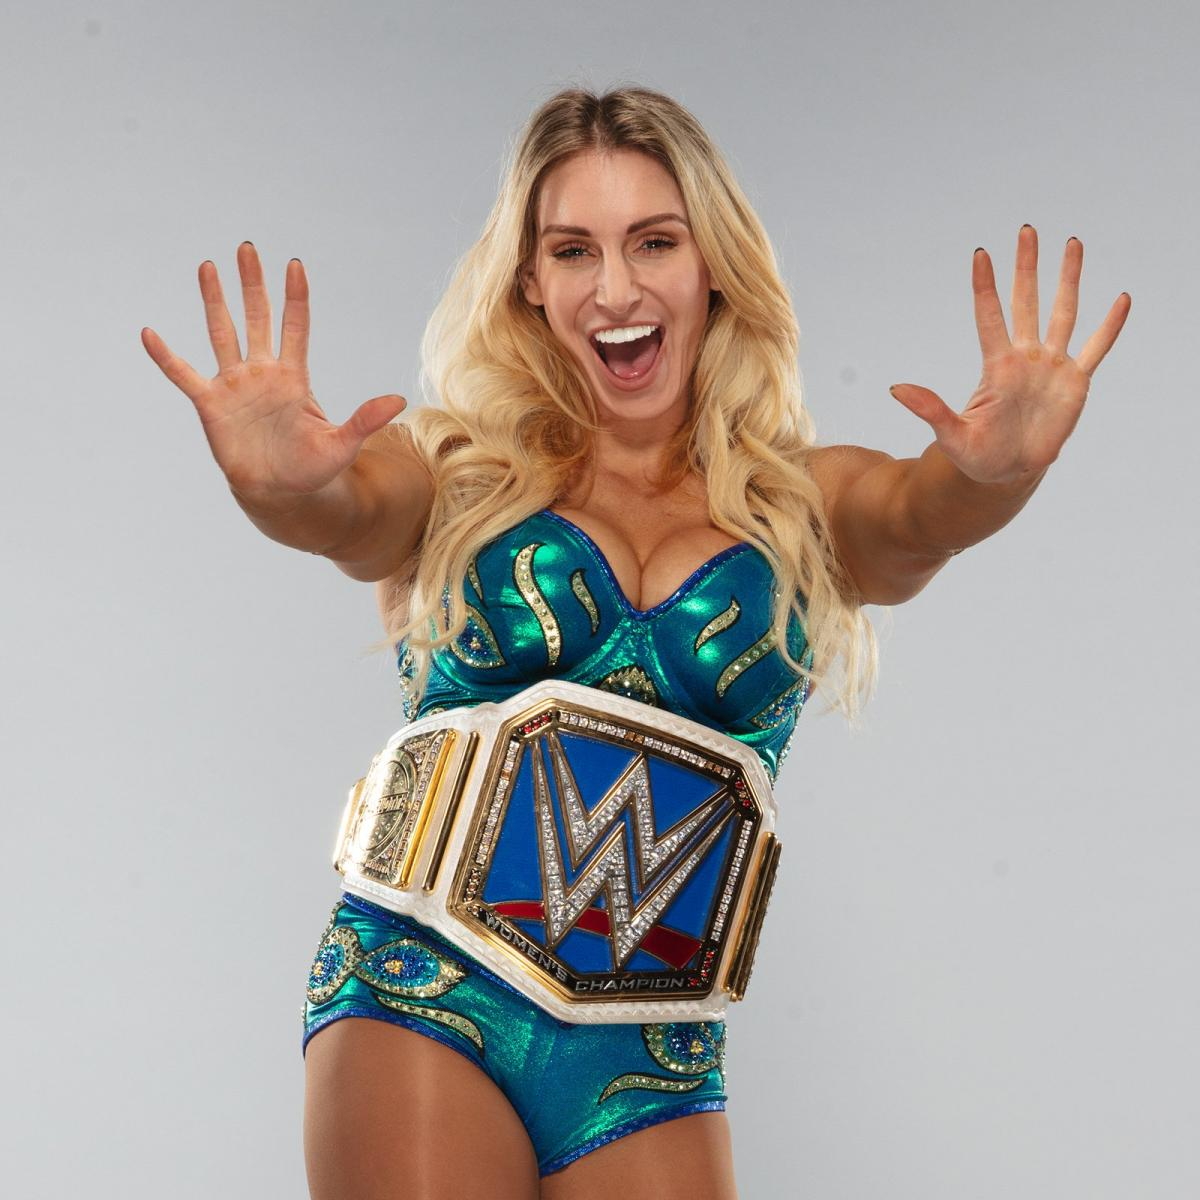 Charlotte ❤💛💚💙💜 2019 WWE Superstar photo shoot outtakes @MsCharlotteWWE #Charlotte #WWE #SmackDown #SmackdownOnFox #Raw